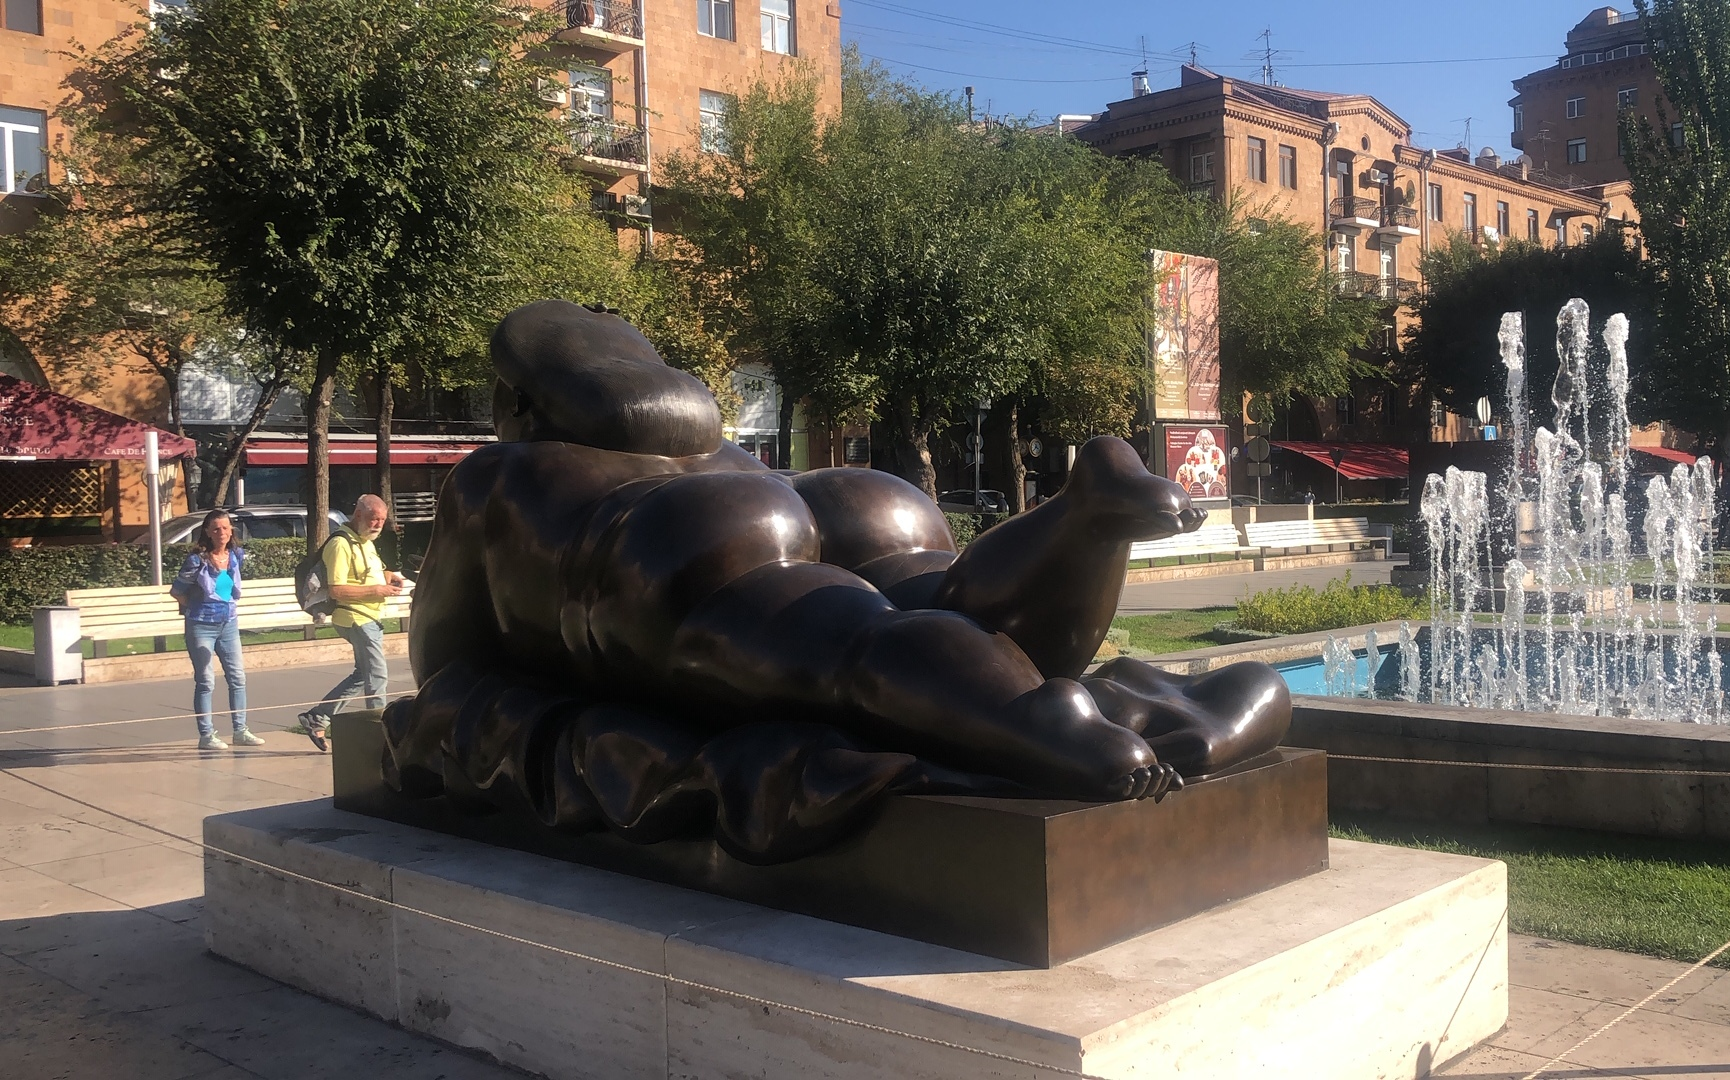 Inflated Animal and Human Shapes in the Art of Fernando Botero